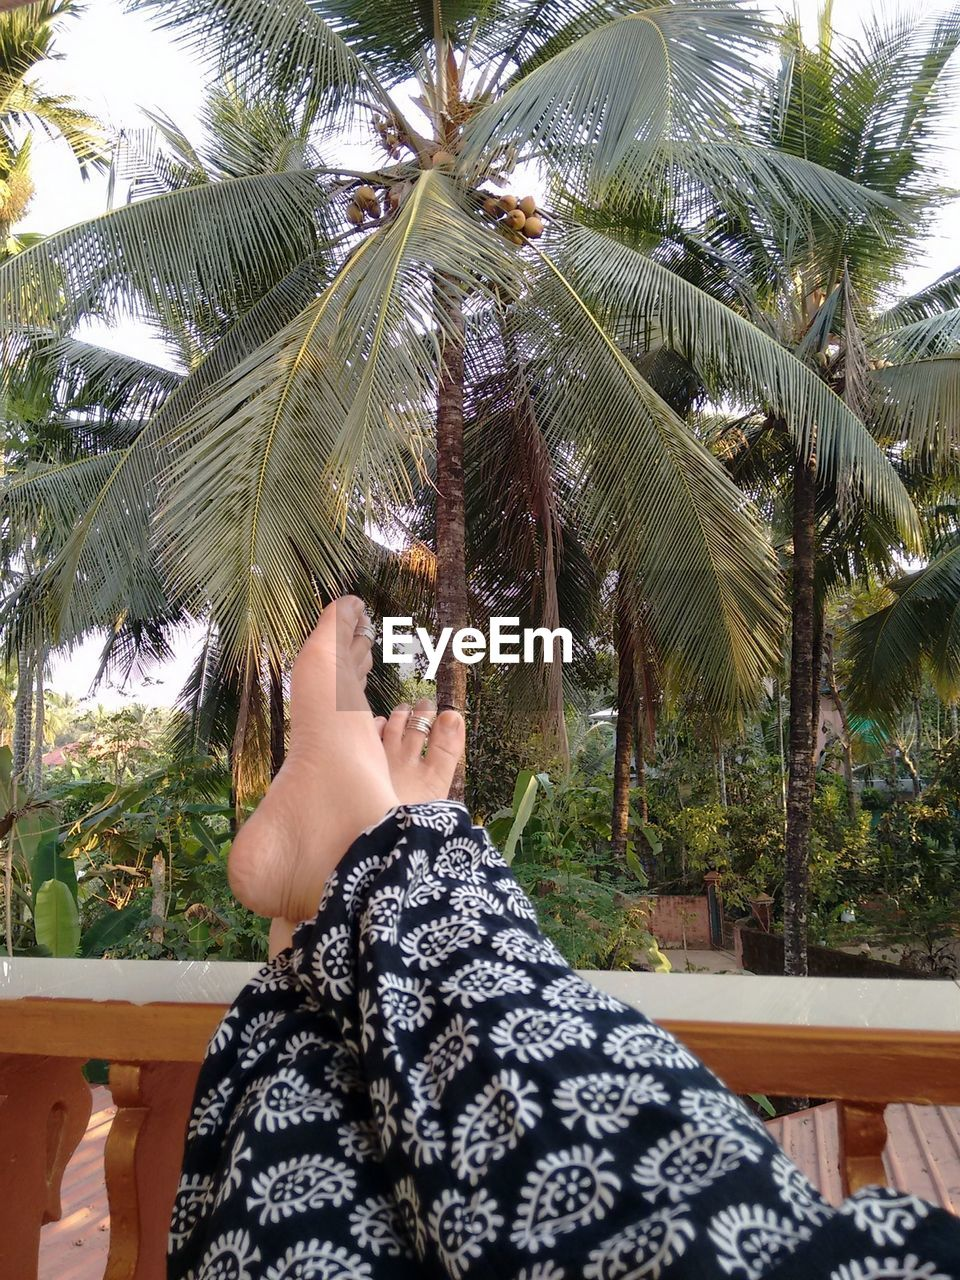 Low section of person legs on balcony railing against coconut palm trees